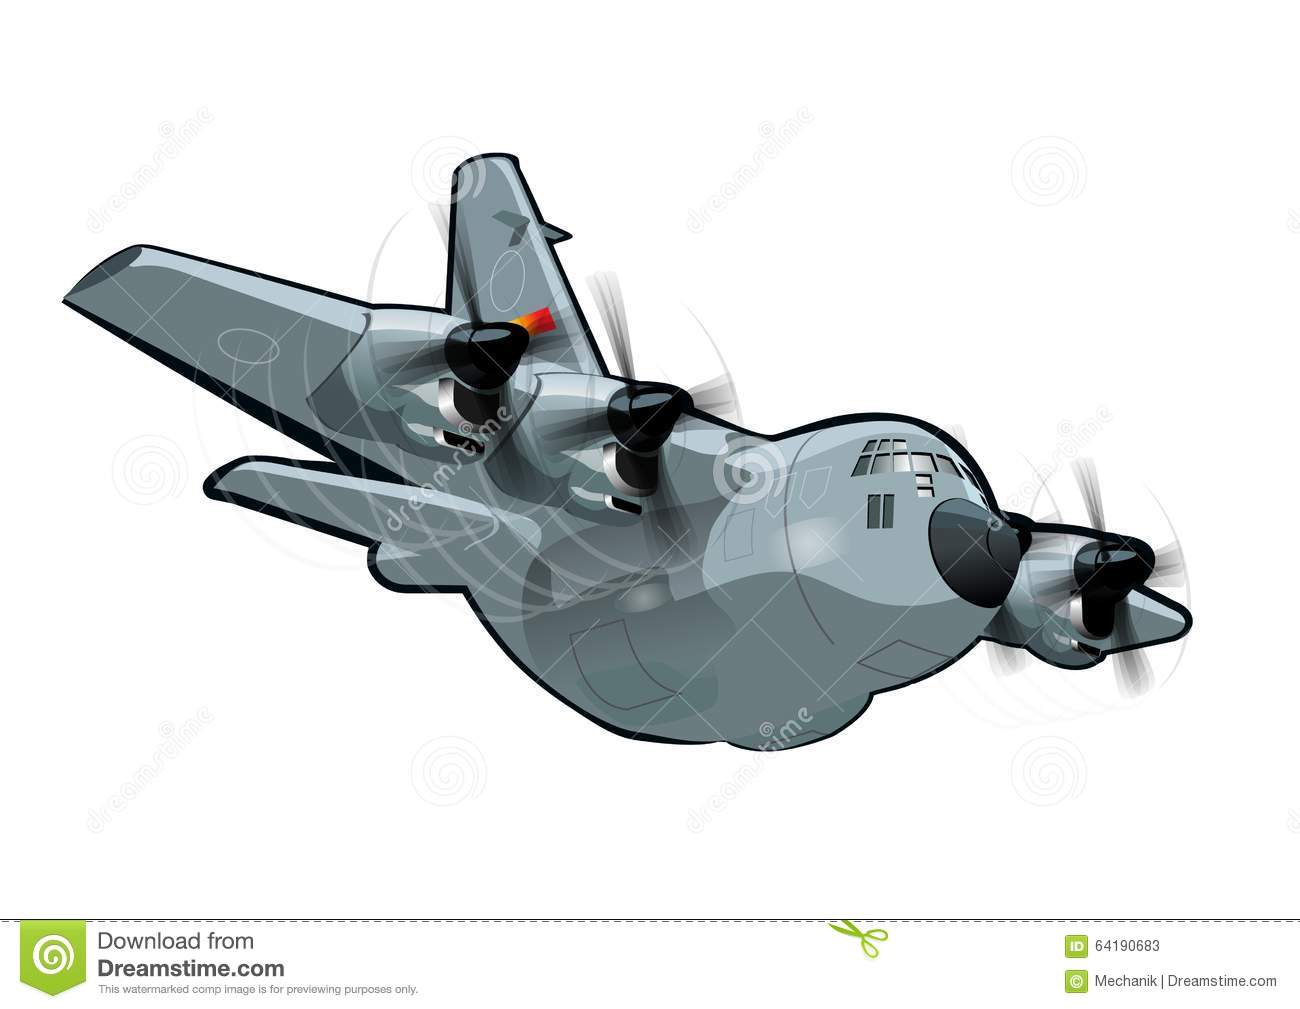 toy c 130 planes with C 130j Hercules Clipart on Plane Air Transport Travel Flight 310501 also 4641 together with 598186 together with Antonov An 124 184988369 besides Une Tres Intrepide Realisation Lego.